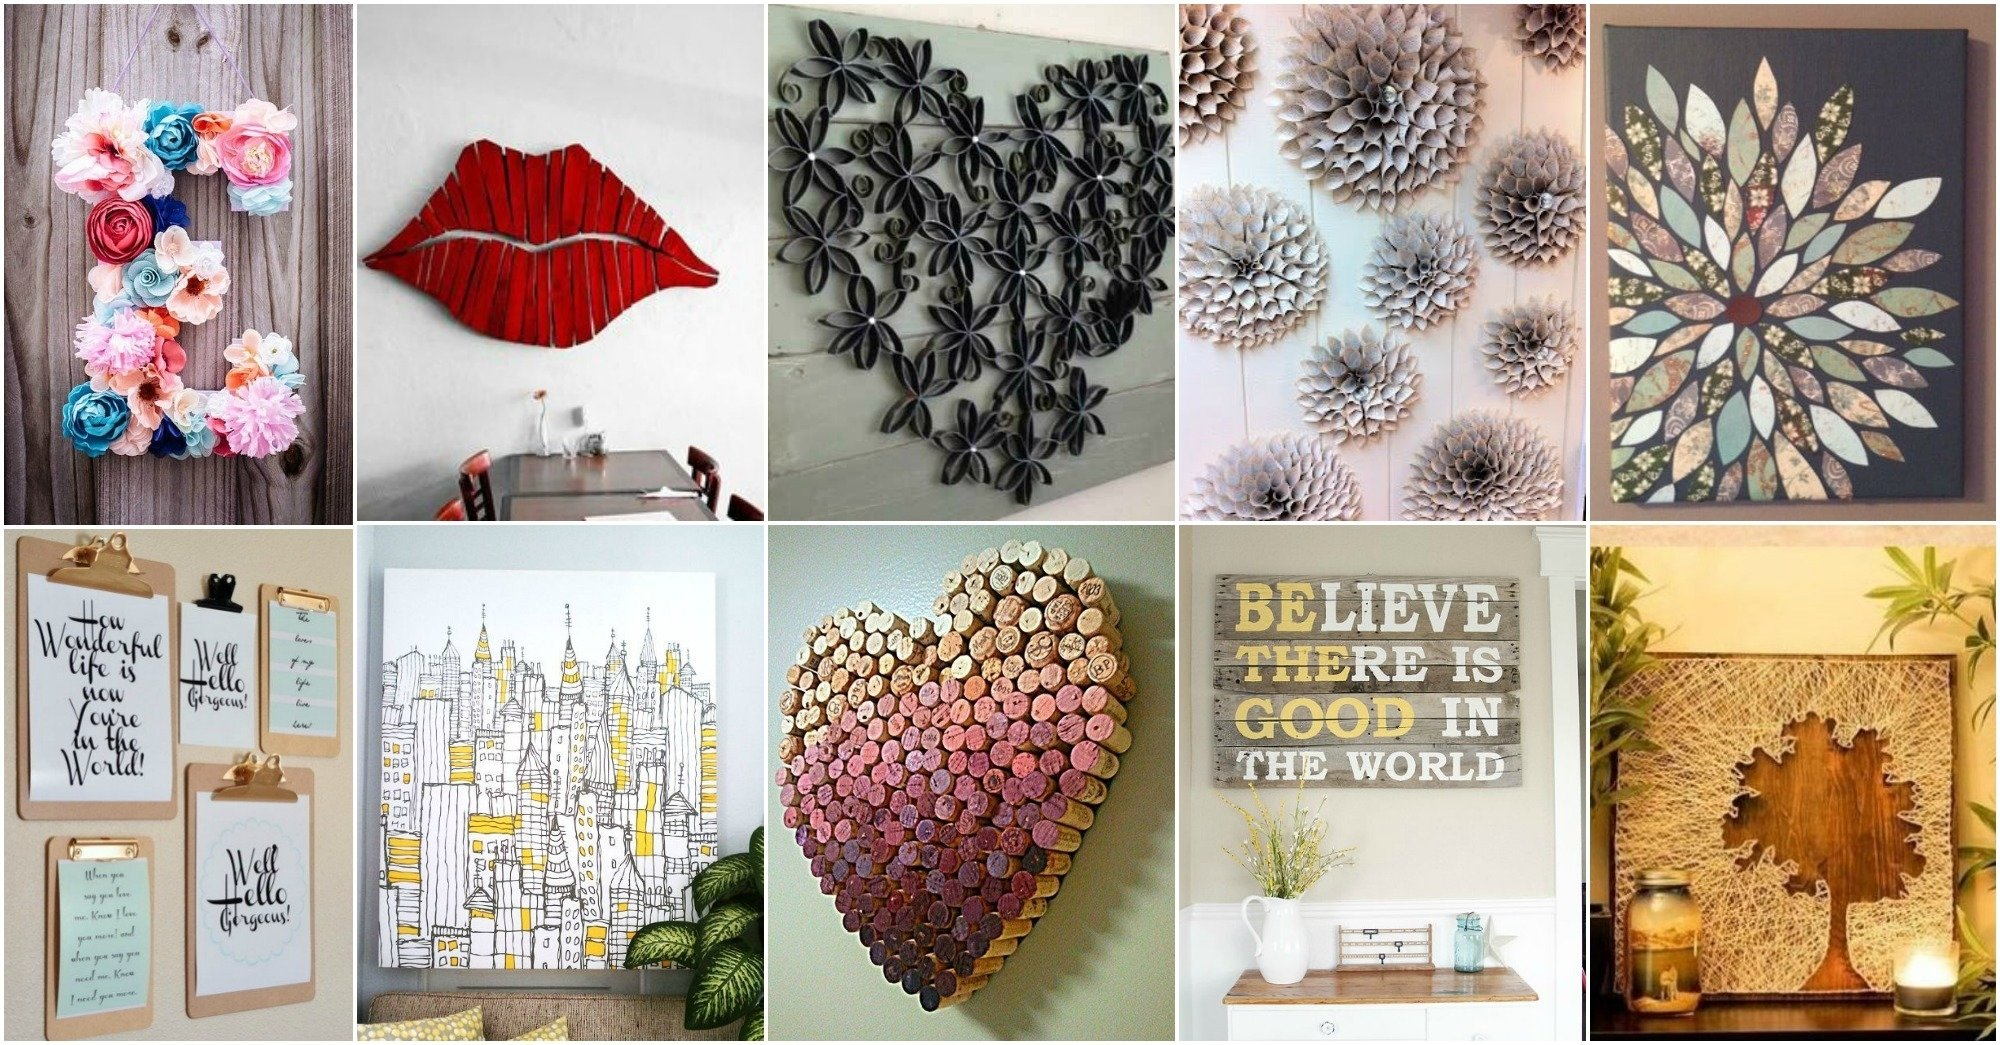 10 Cute Do It Yourself Decorating Ideas 20 diy innovative wall art decor ideas that will leave you speechless 2020